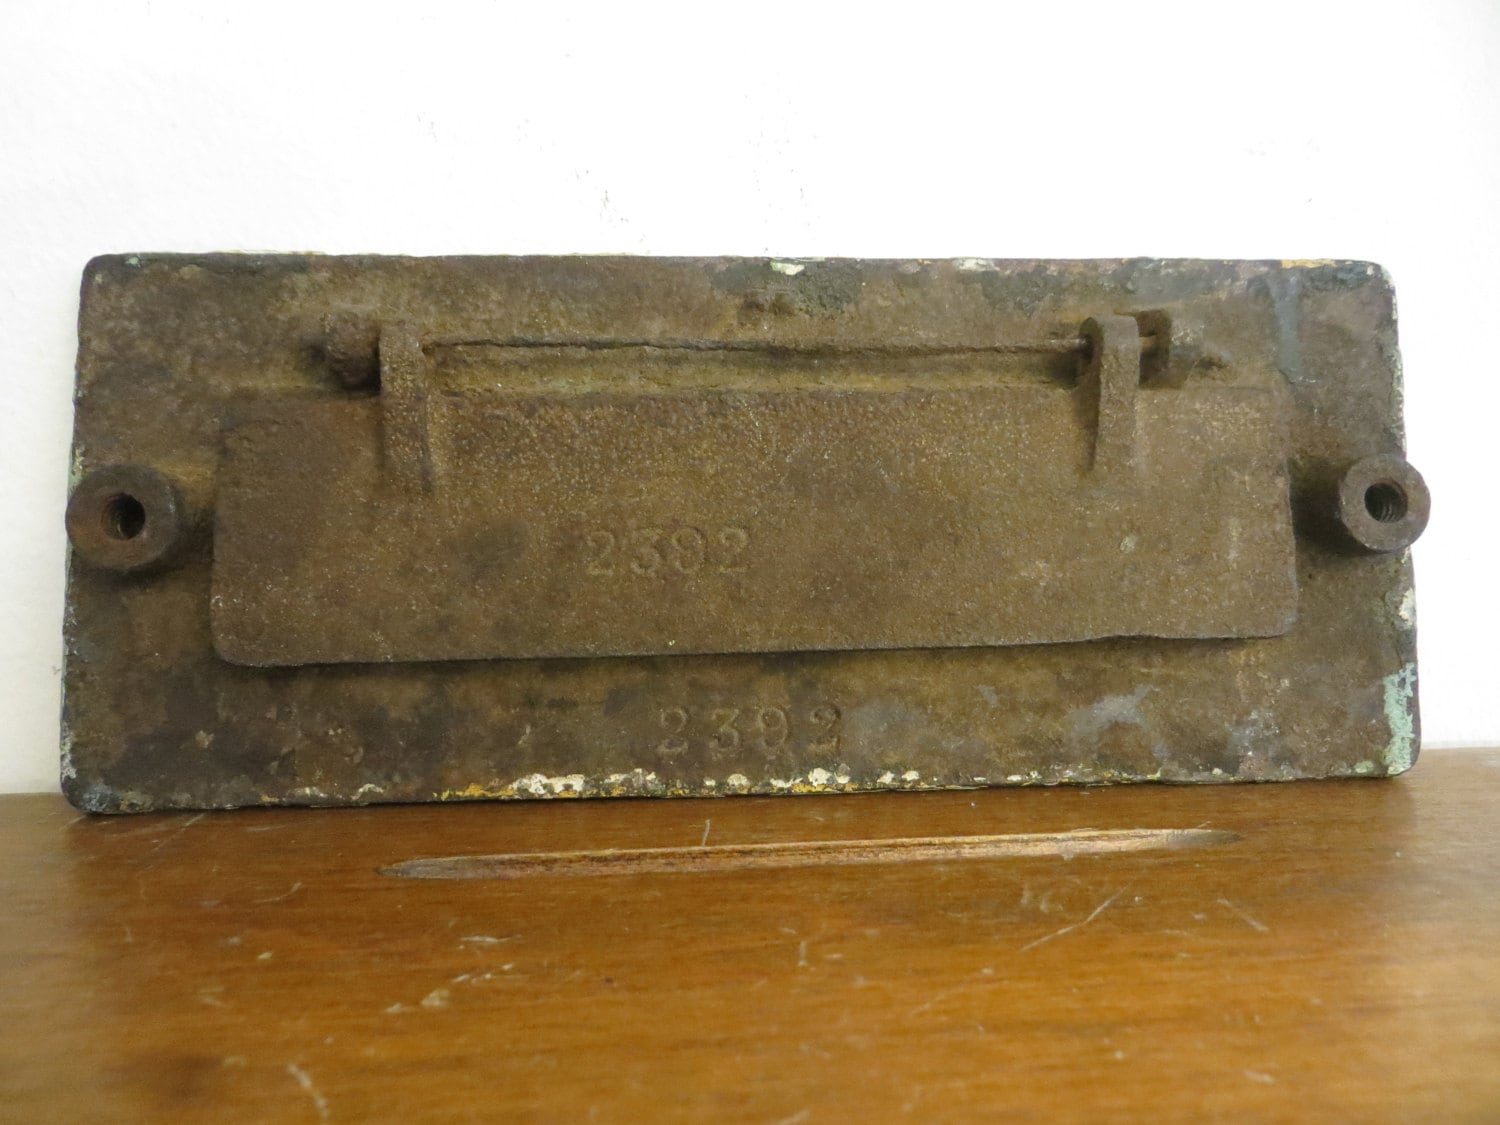 Sold by MoreUnusualTheBetter - Cast Iron Antique Mail Slot, Ornate Letter Slot, Door Mail Slot